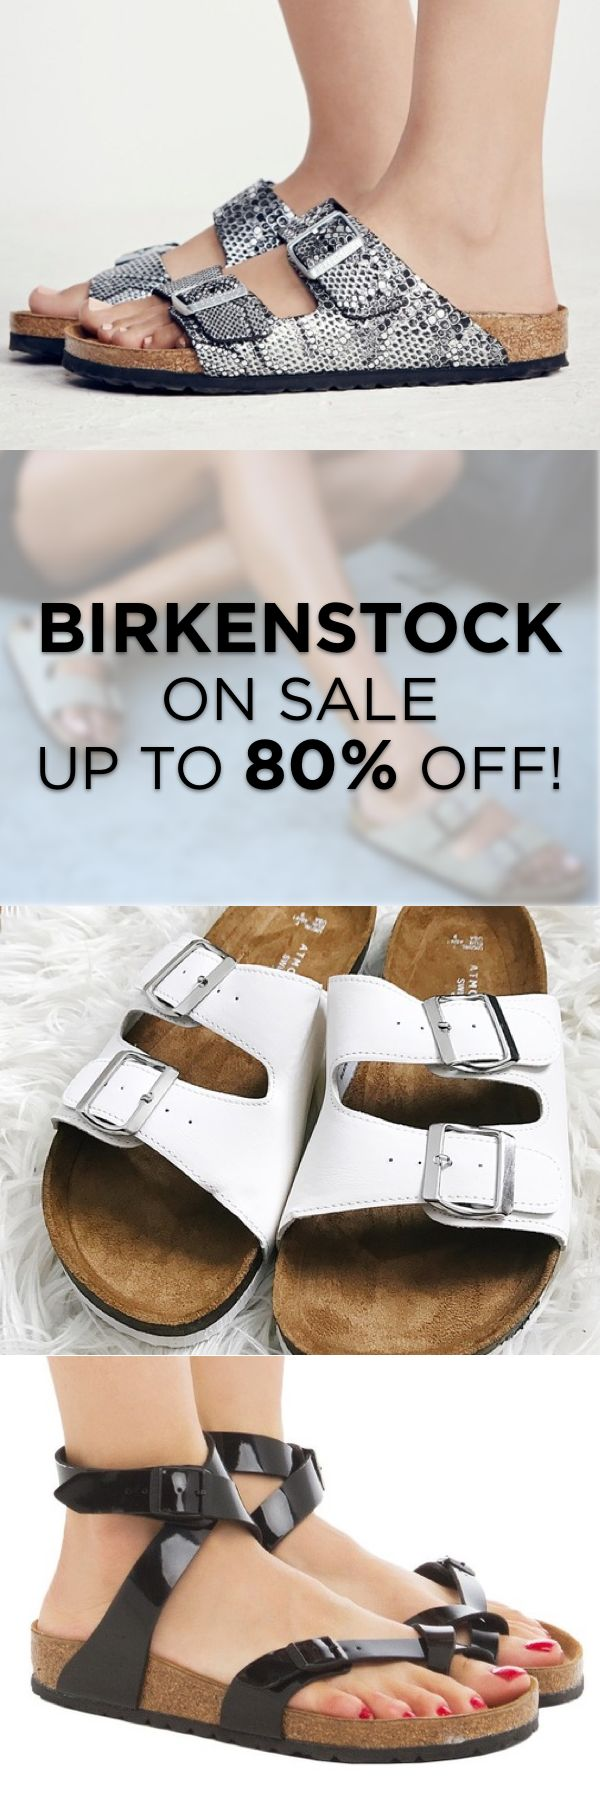 List an Item or Make an Offer! Buy & Sell BIRKENSTOCKS at POSHMARK all from your phone. Install the free app now! Shipping is also fast and easy for sellers and buyers!